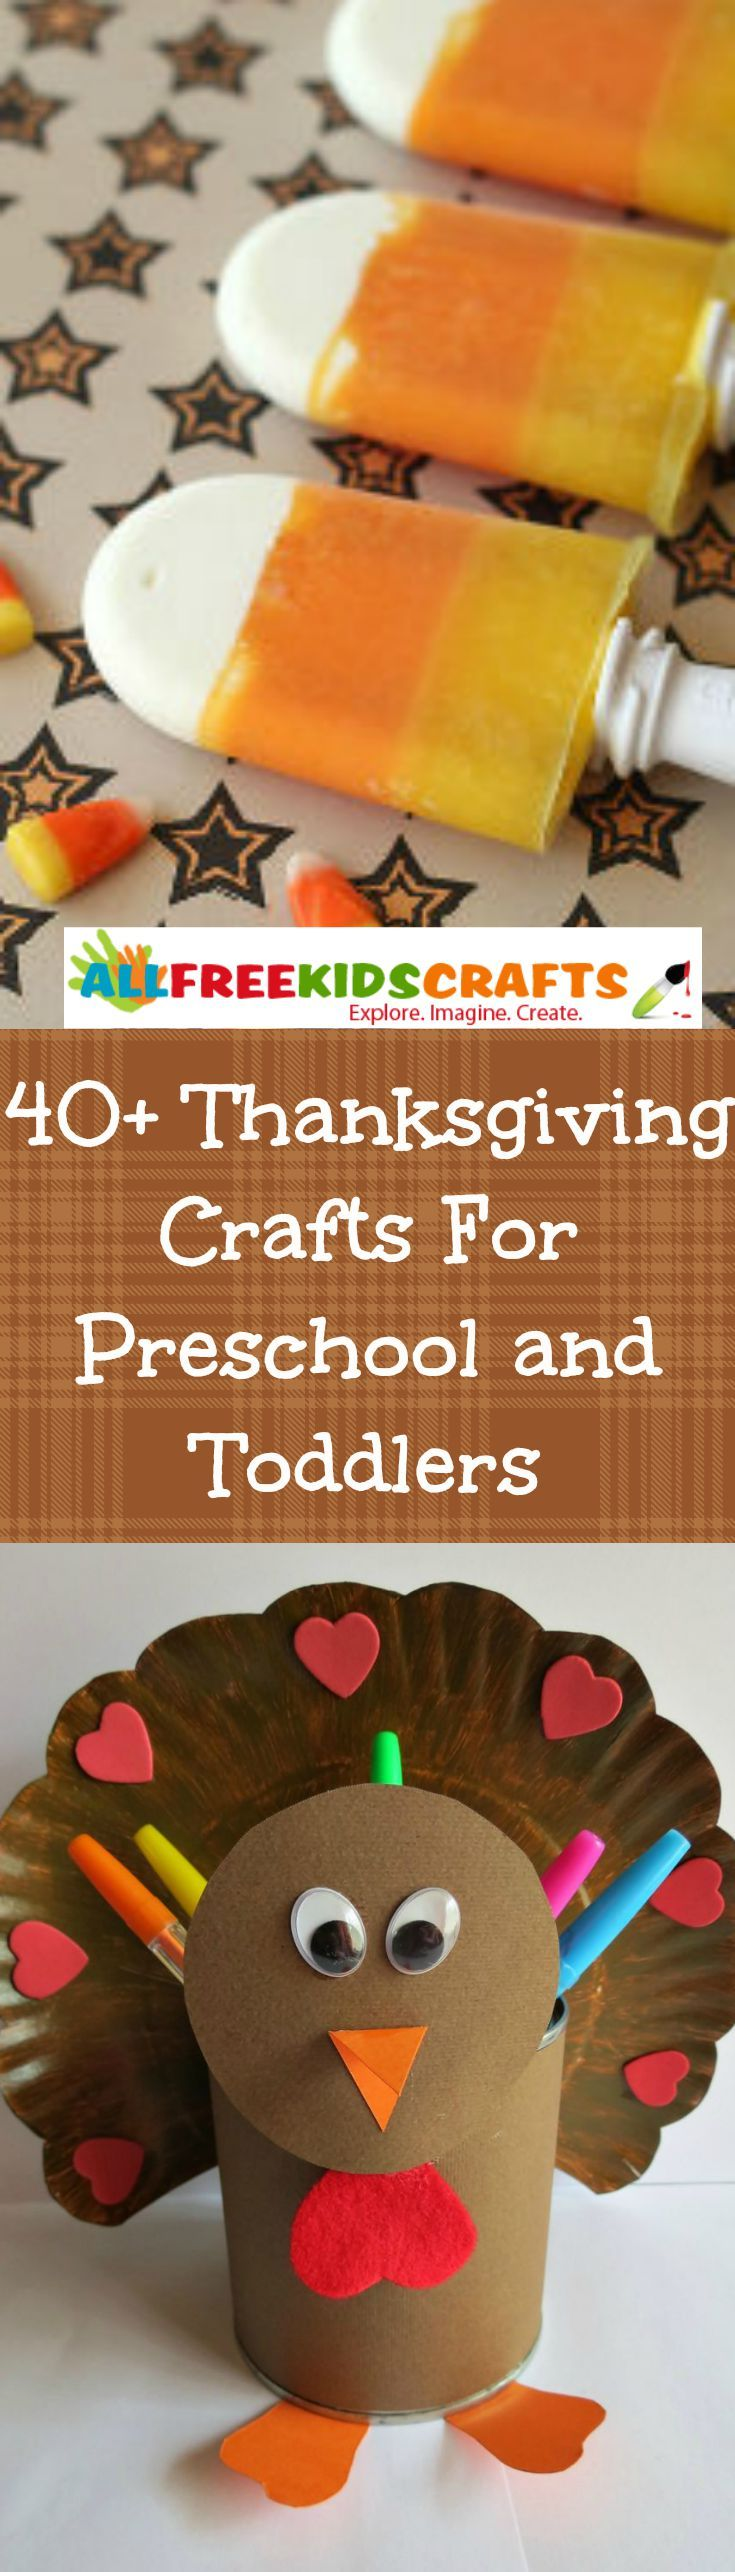 Involving the littlest family members is just as important as spending time with the adults and teens, and that's why this list of 40+ Thanksgiving Crafts for Toddlers & Preschool Thanksgiving Crafts is an essential resource for Turkey Day. These great Thanksgiving crafts for kids are sure to give young ones wonderful Thanksgiving memories.